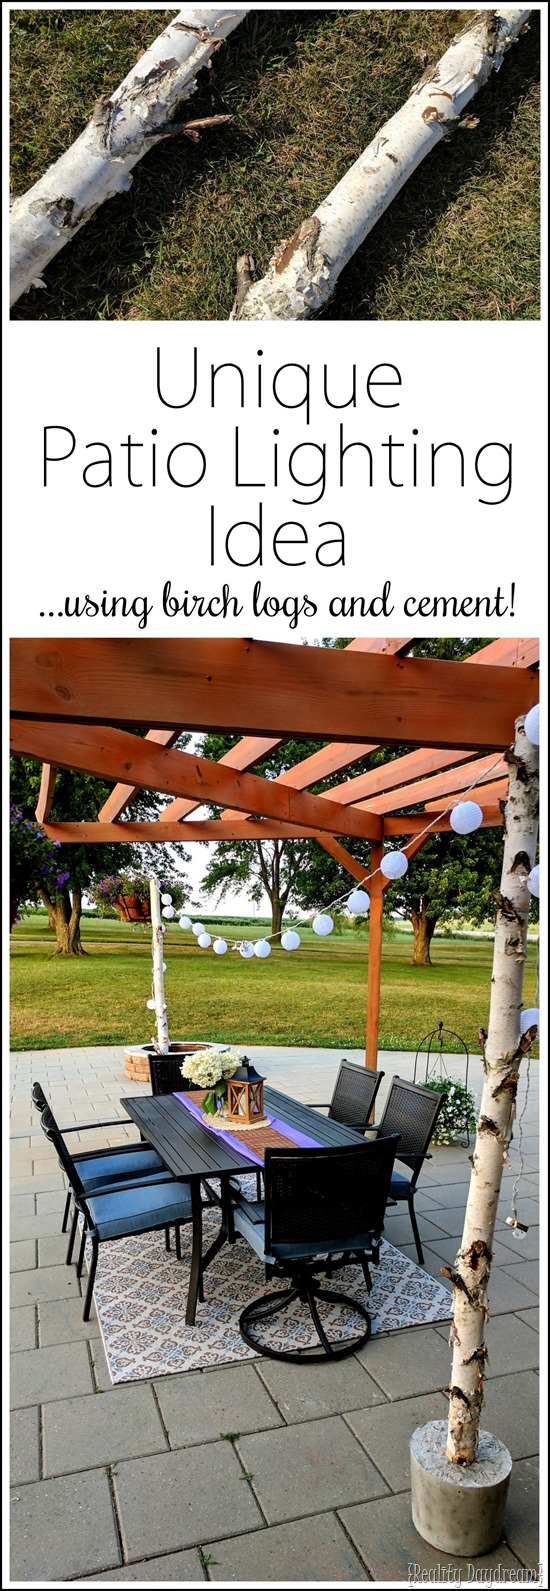 String your outdoor lights between to birch logs set in cement for the cutest DIY outdoor lighting for your patio! {Reality Daydream}